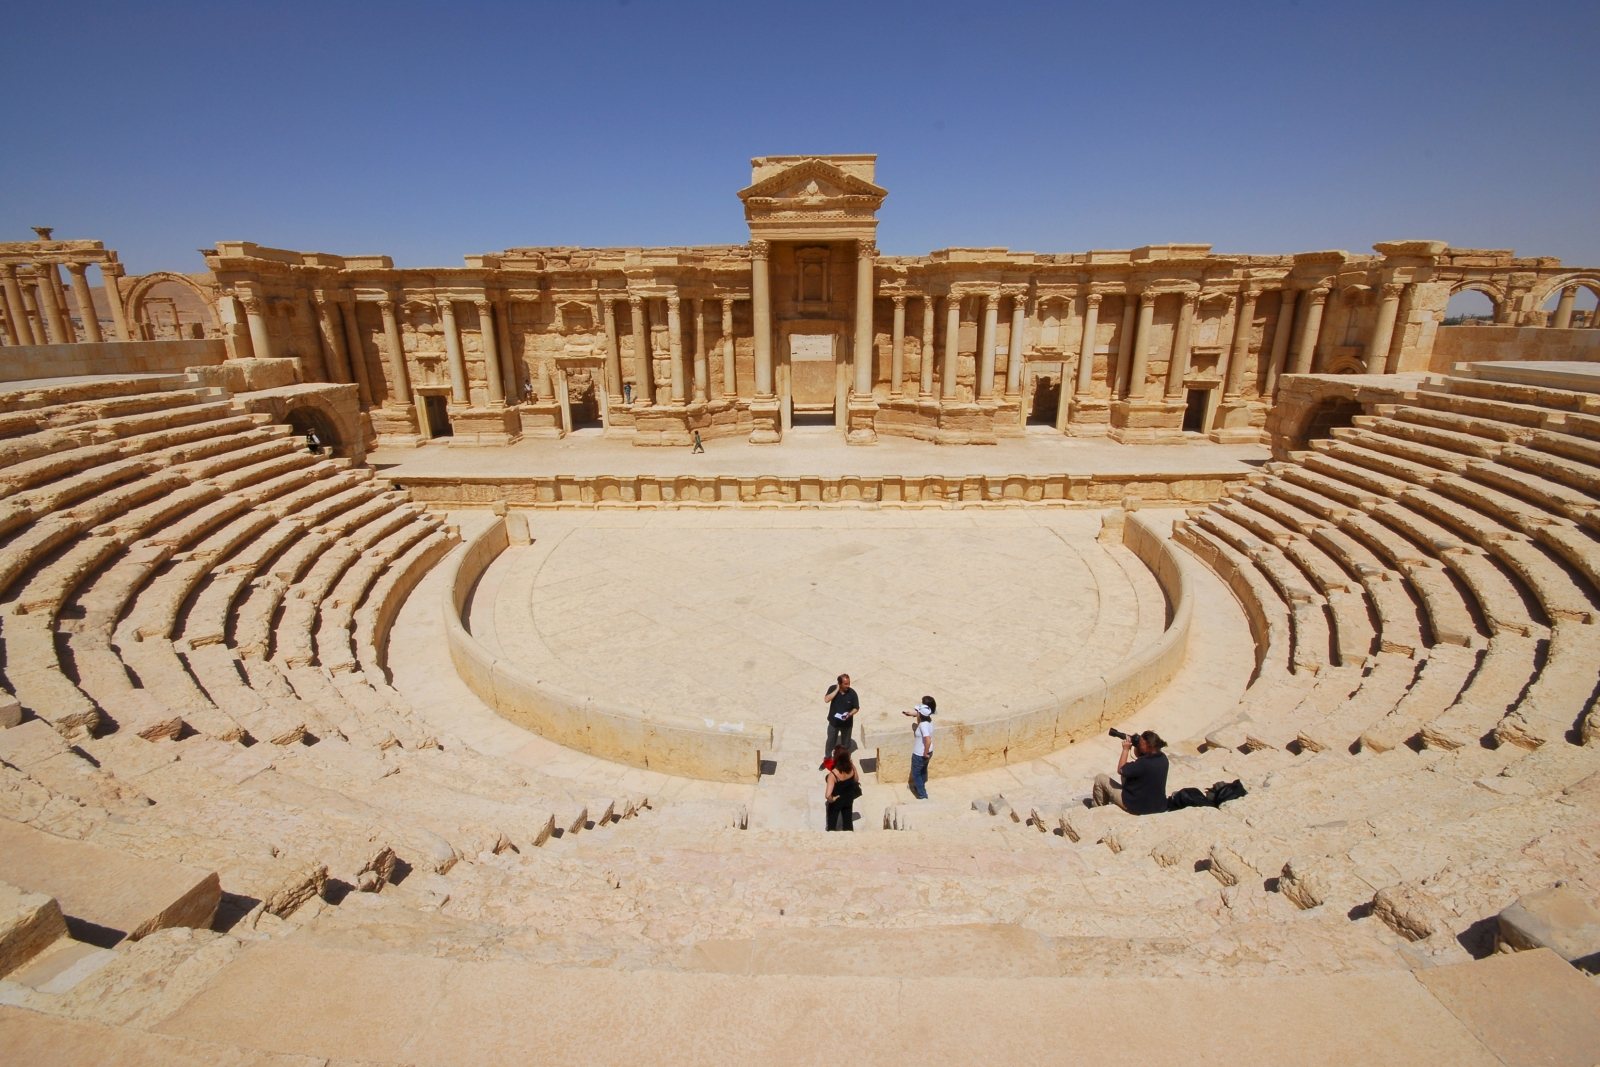 Palmyra: Isis releases first 'tourist' video from ancient Syrian city